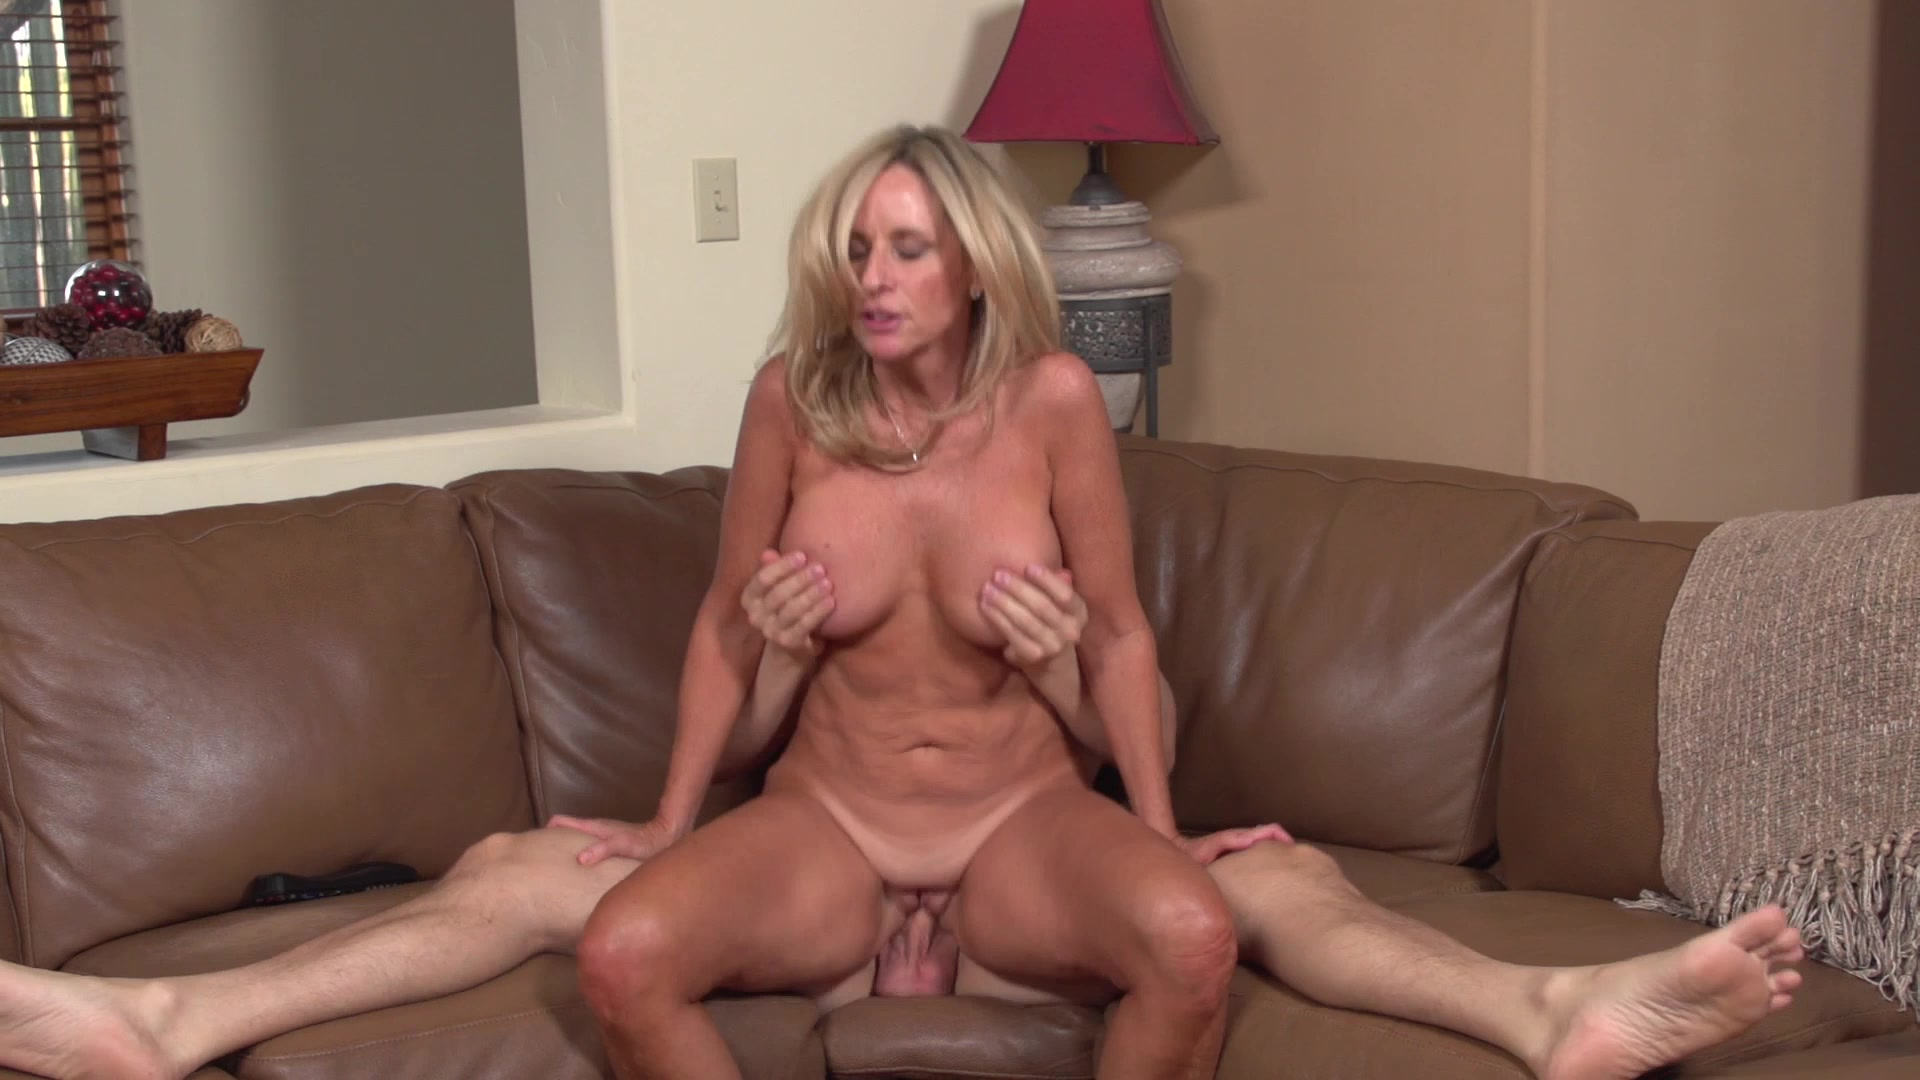 Jodi West Pornstar Streaming Pics, Dvds, And More Famous Porn Stars